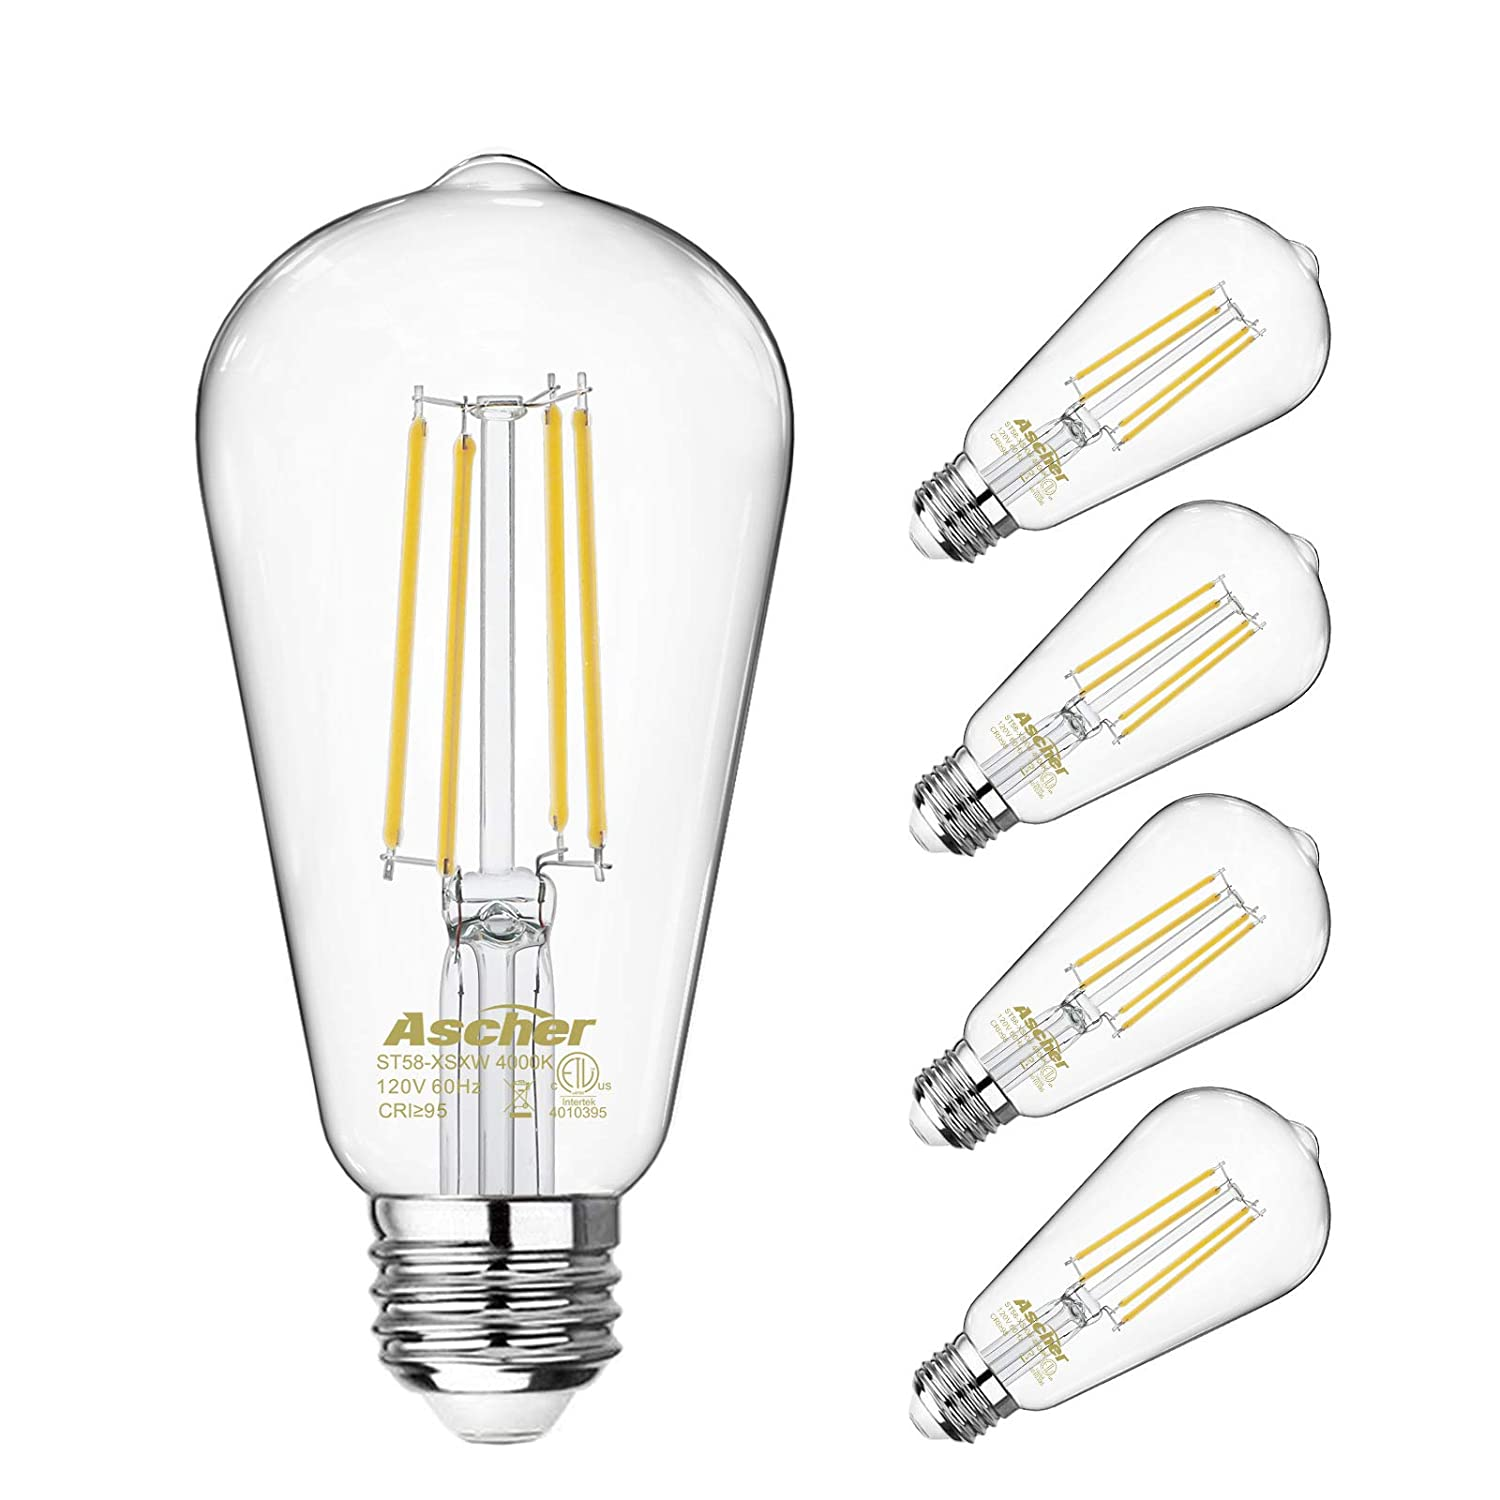 Vintage LED Edison Bulbs 60 Watt Equivalent